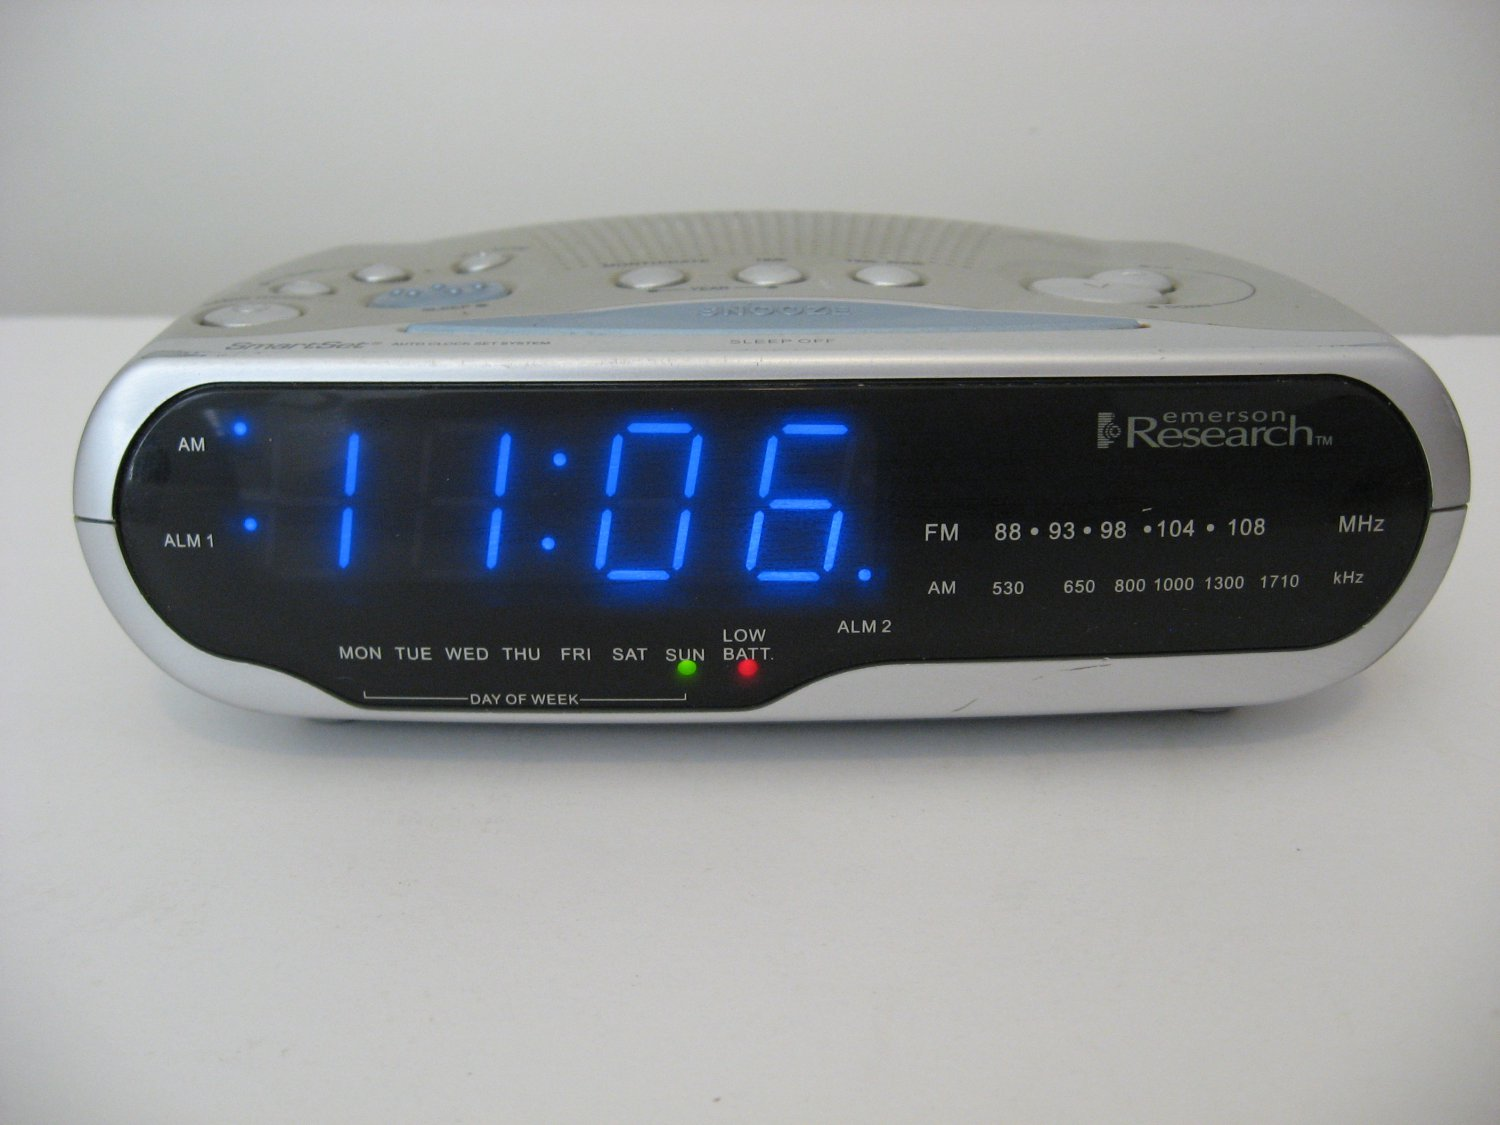 Emerson Research SmartSet Alarm Clock Radio AM/FM - SOLD!